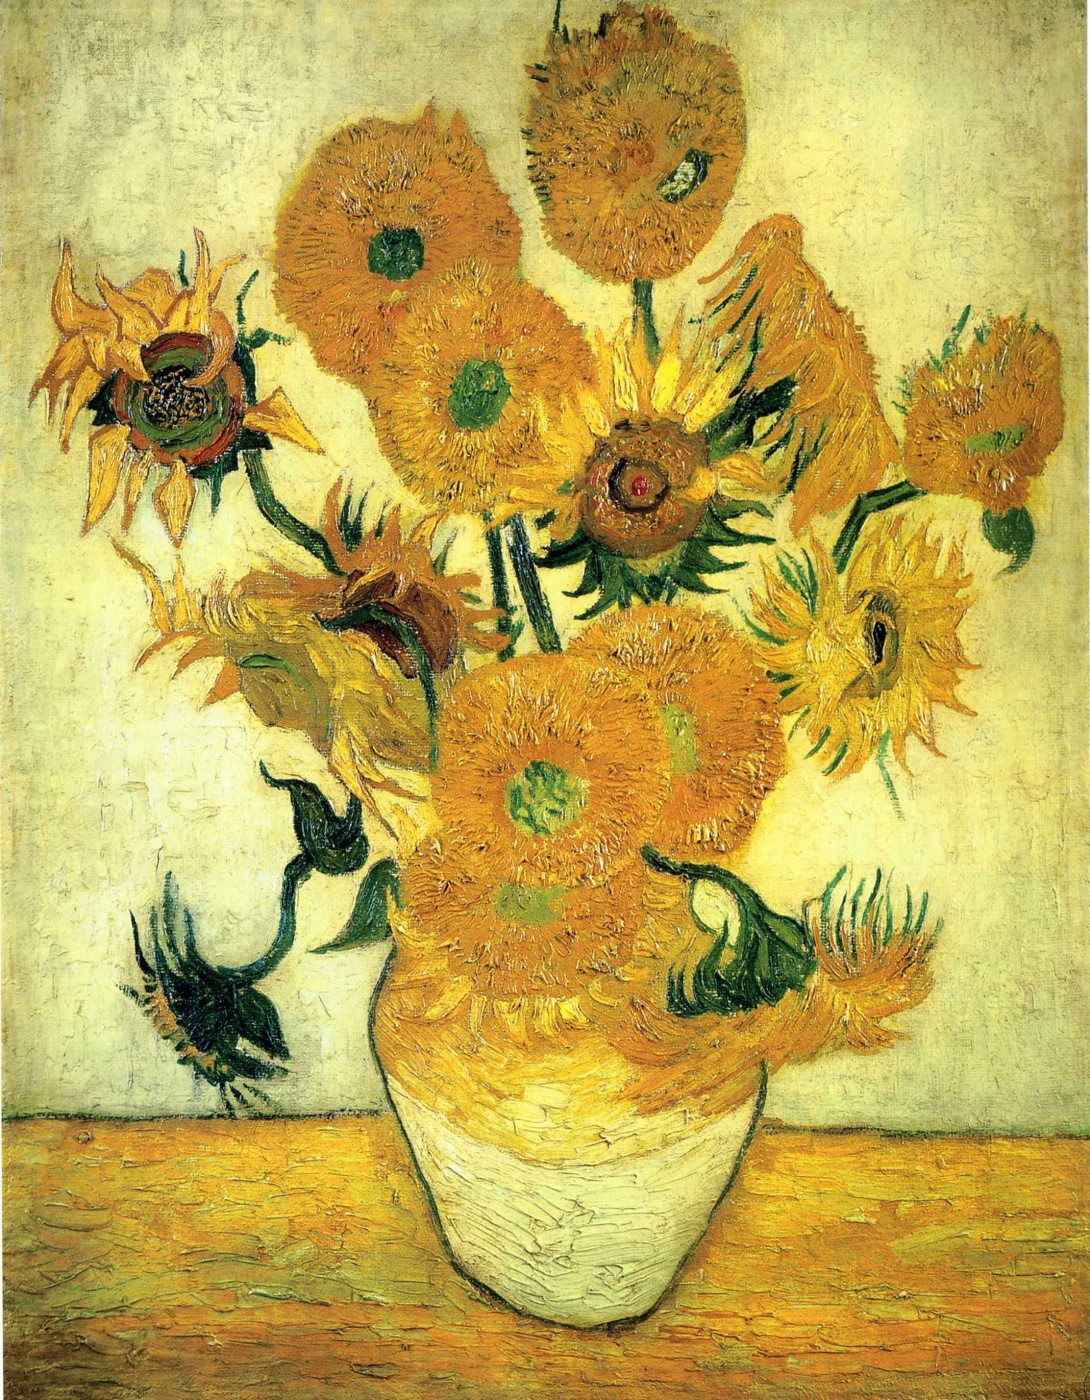 Vincent van Gogh. Sunflowers in a vase